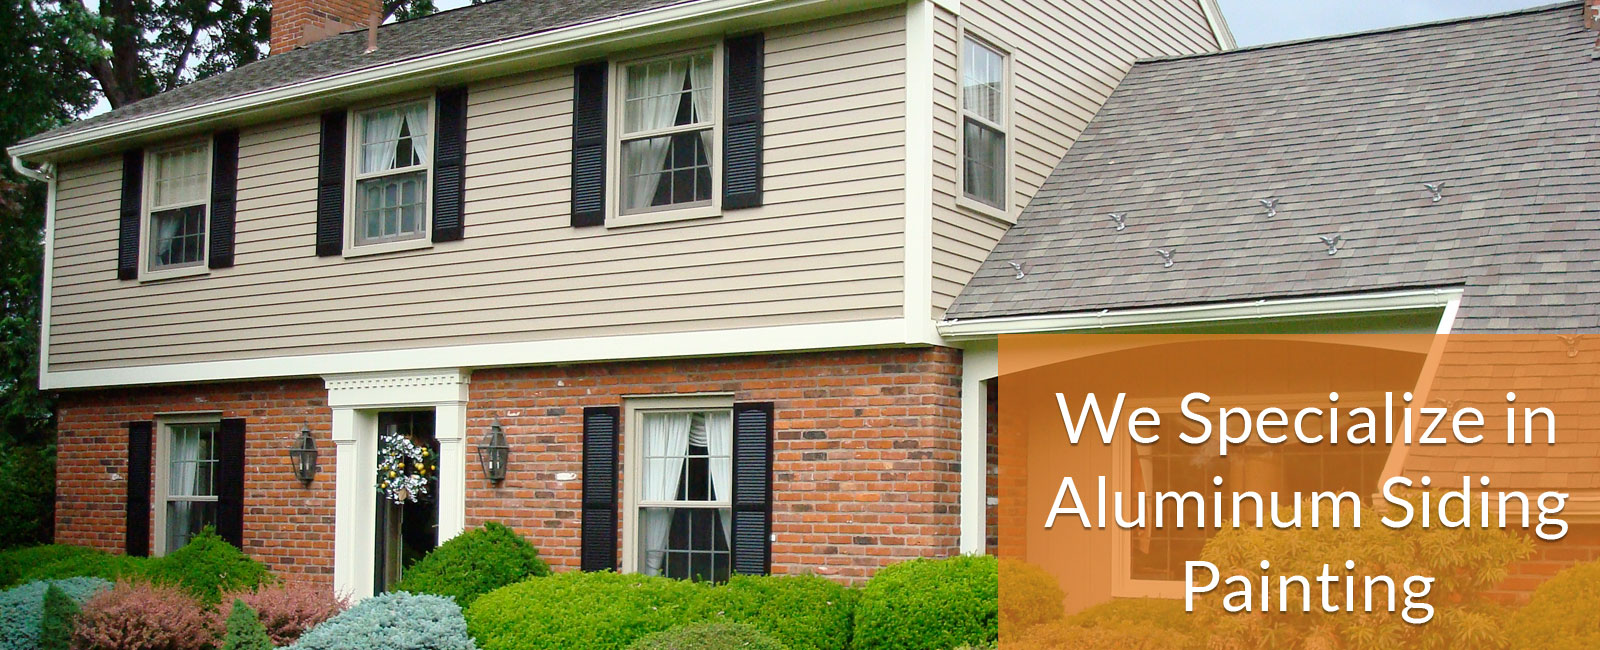 Siding Painting Services Darlington Exterior Bethlehem Pa